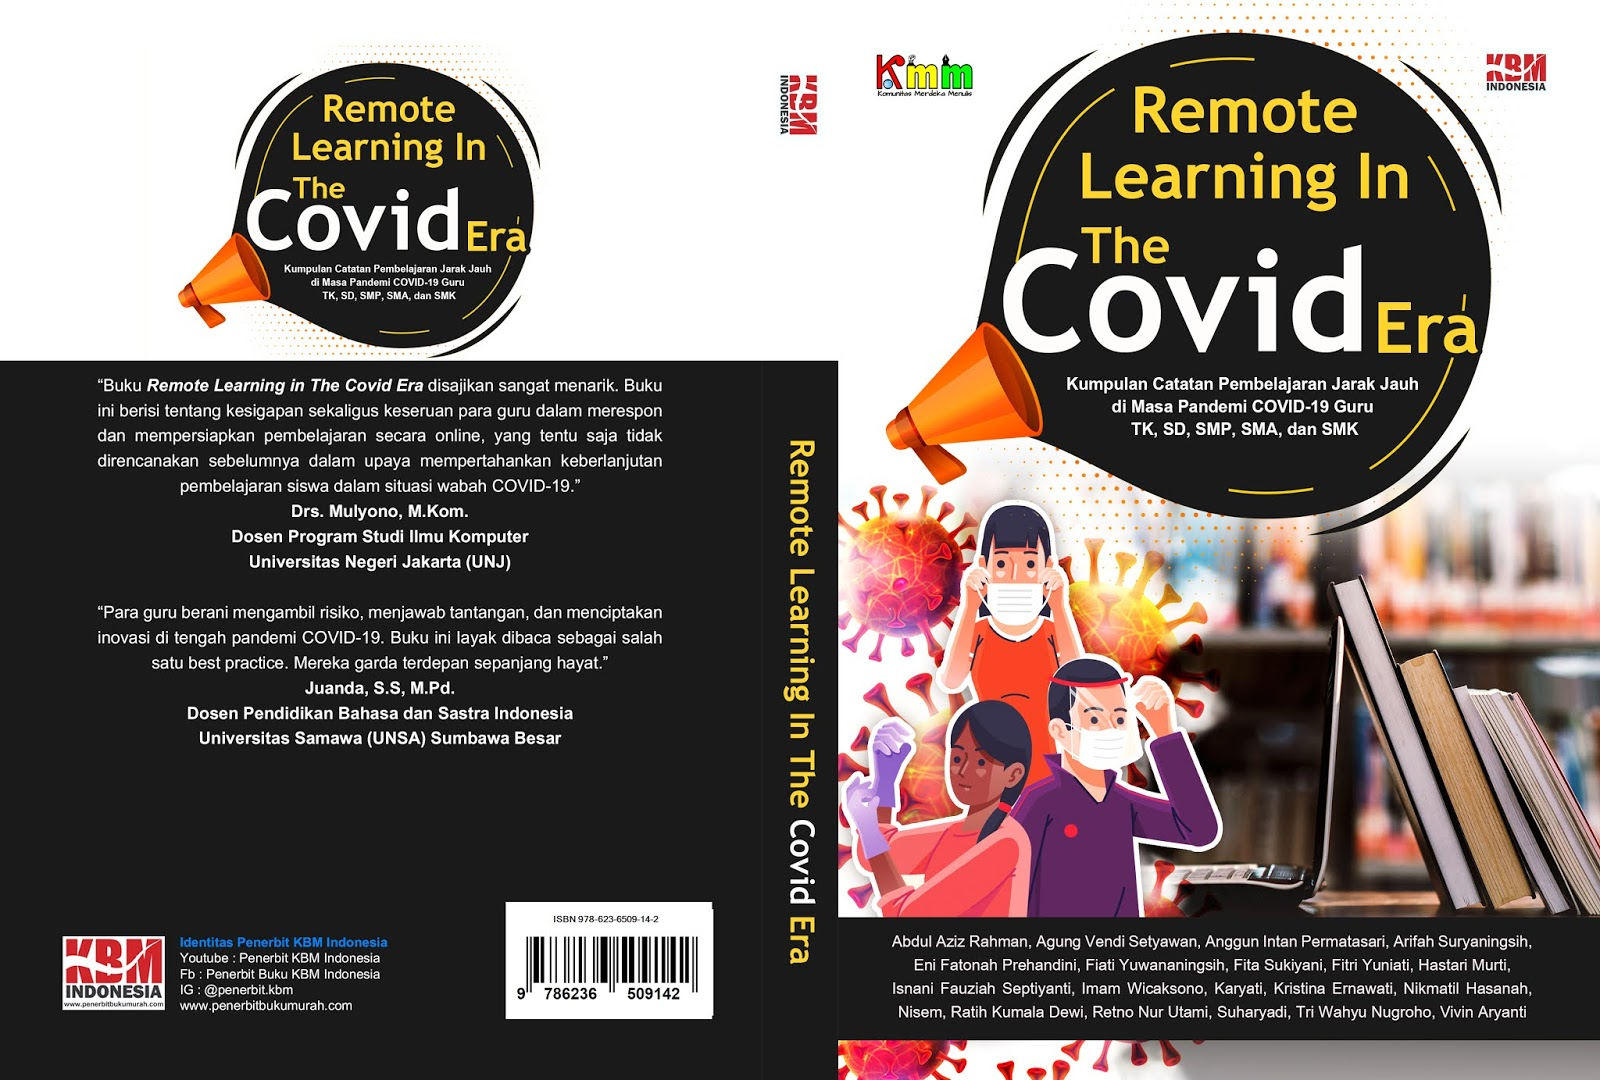 Remote Learning In The Covid Era